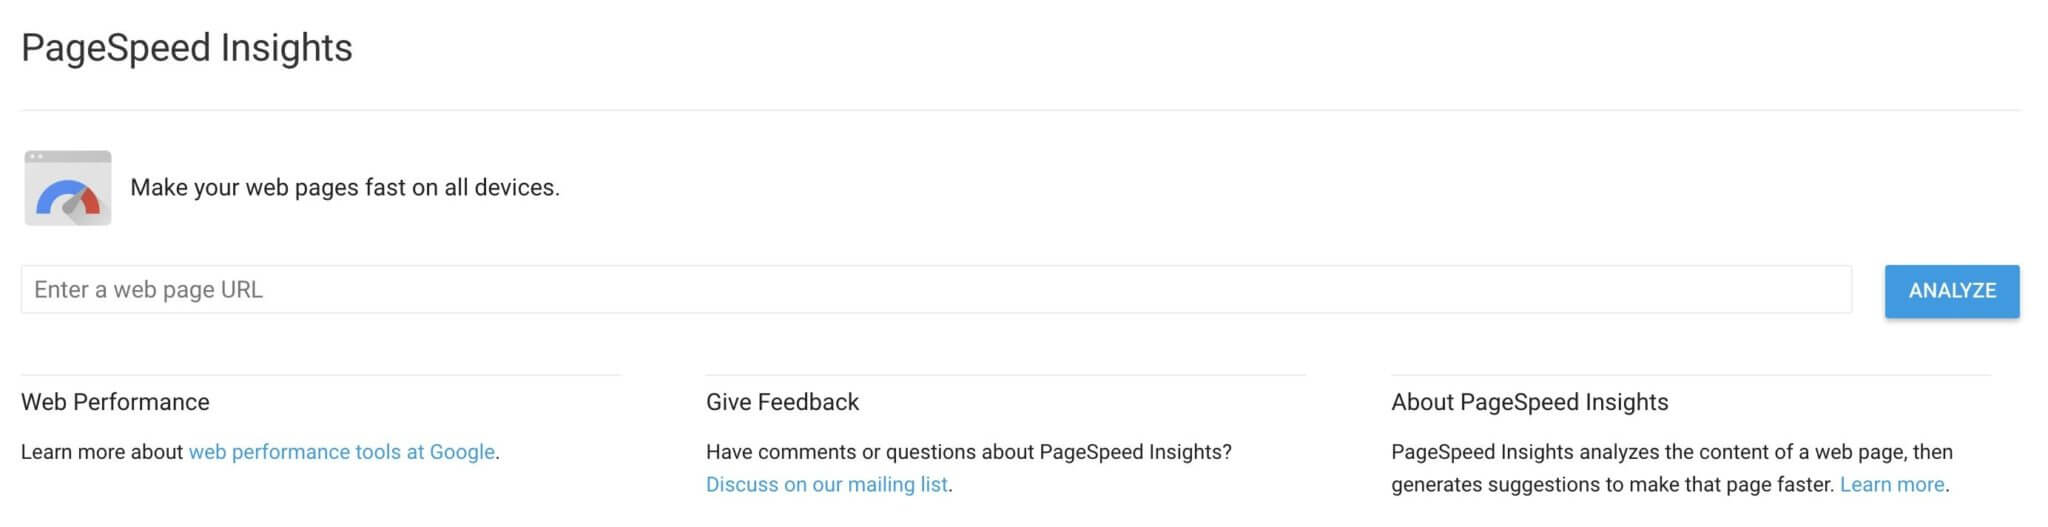 PageSpeed Insights tool di Google